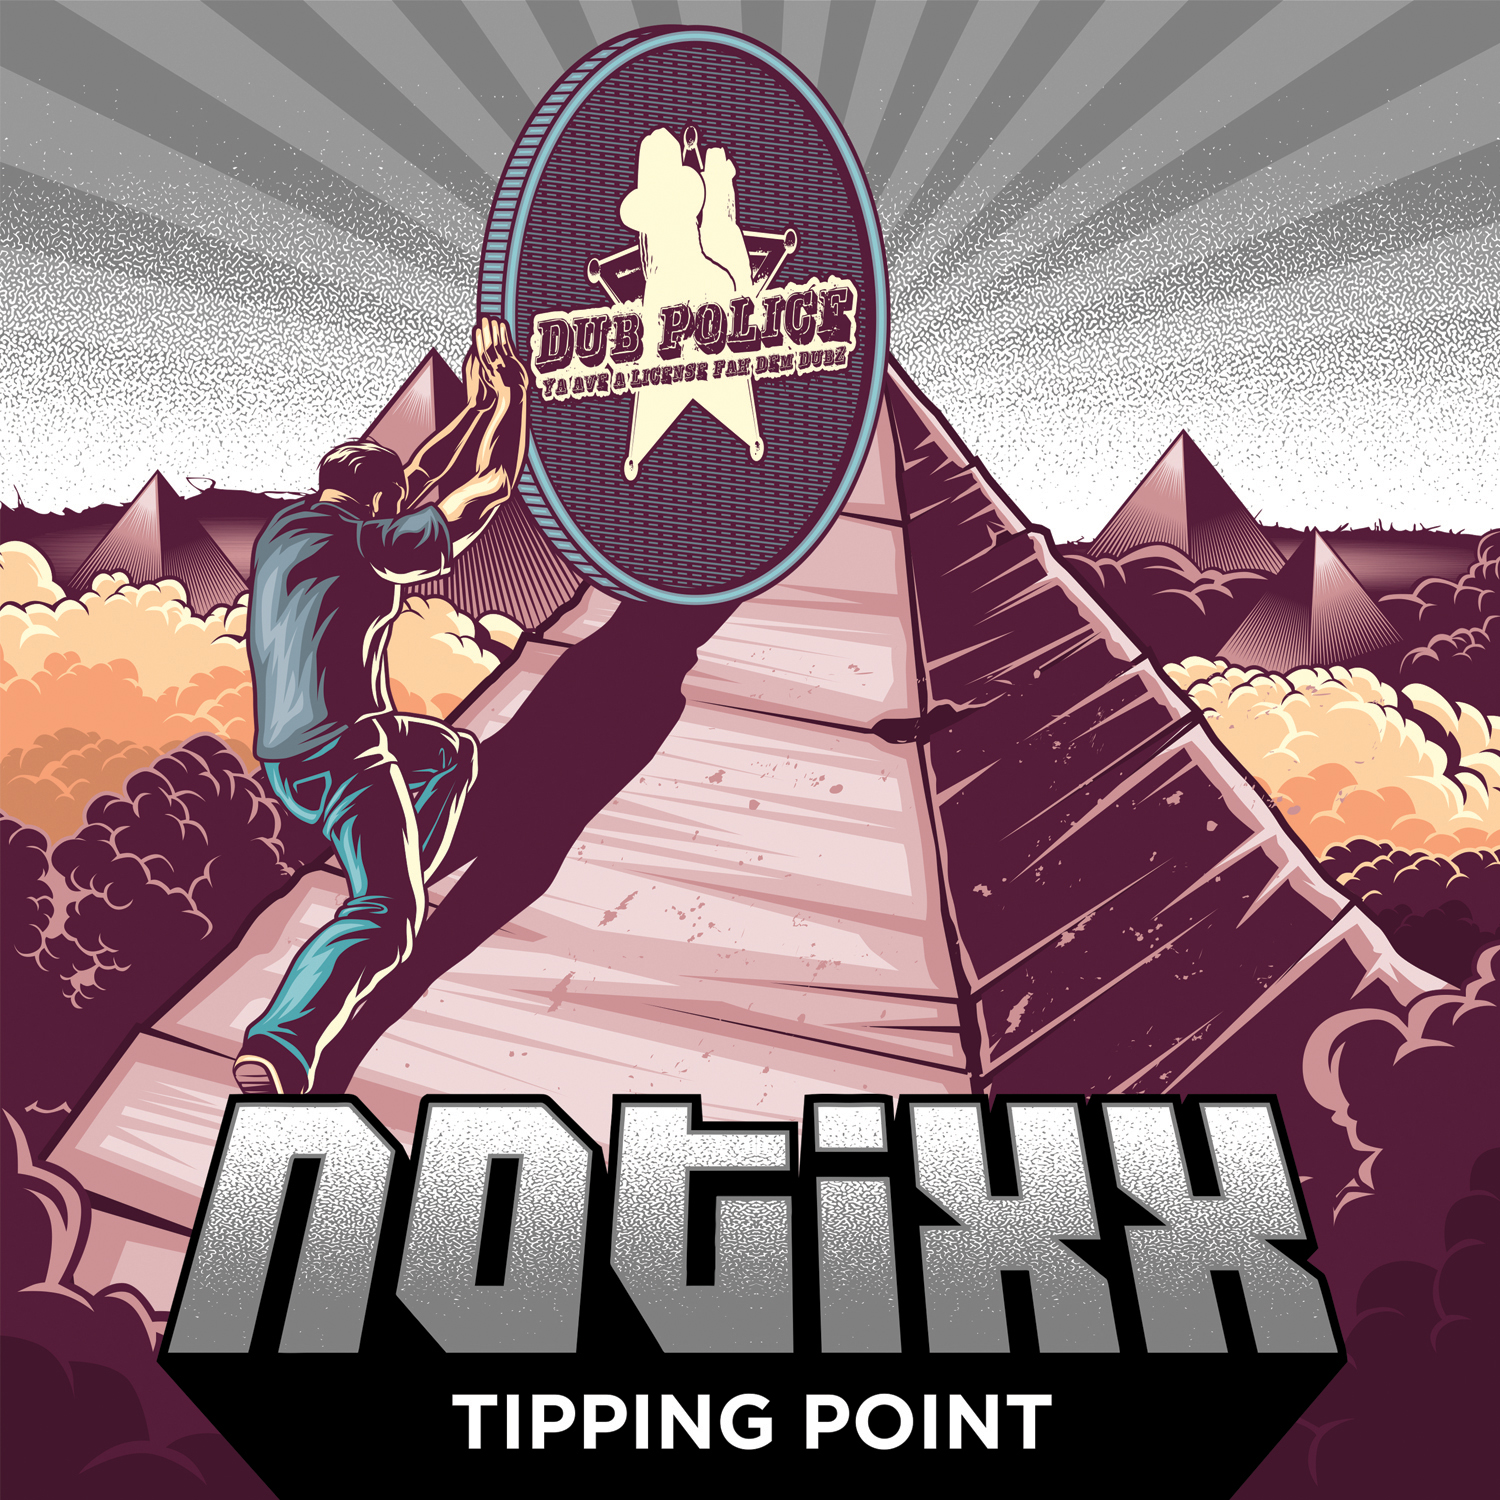 DP113: NOTIXX - TIPPING POINT